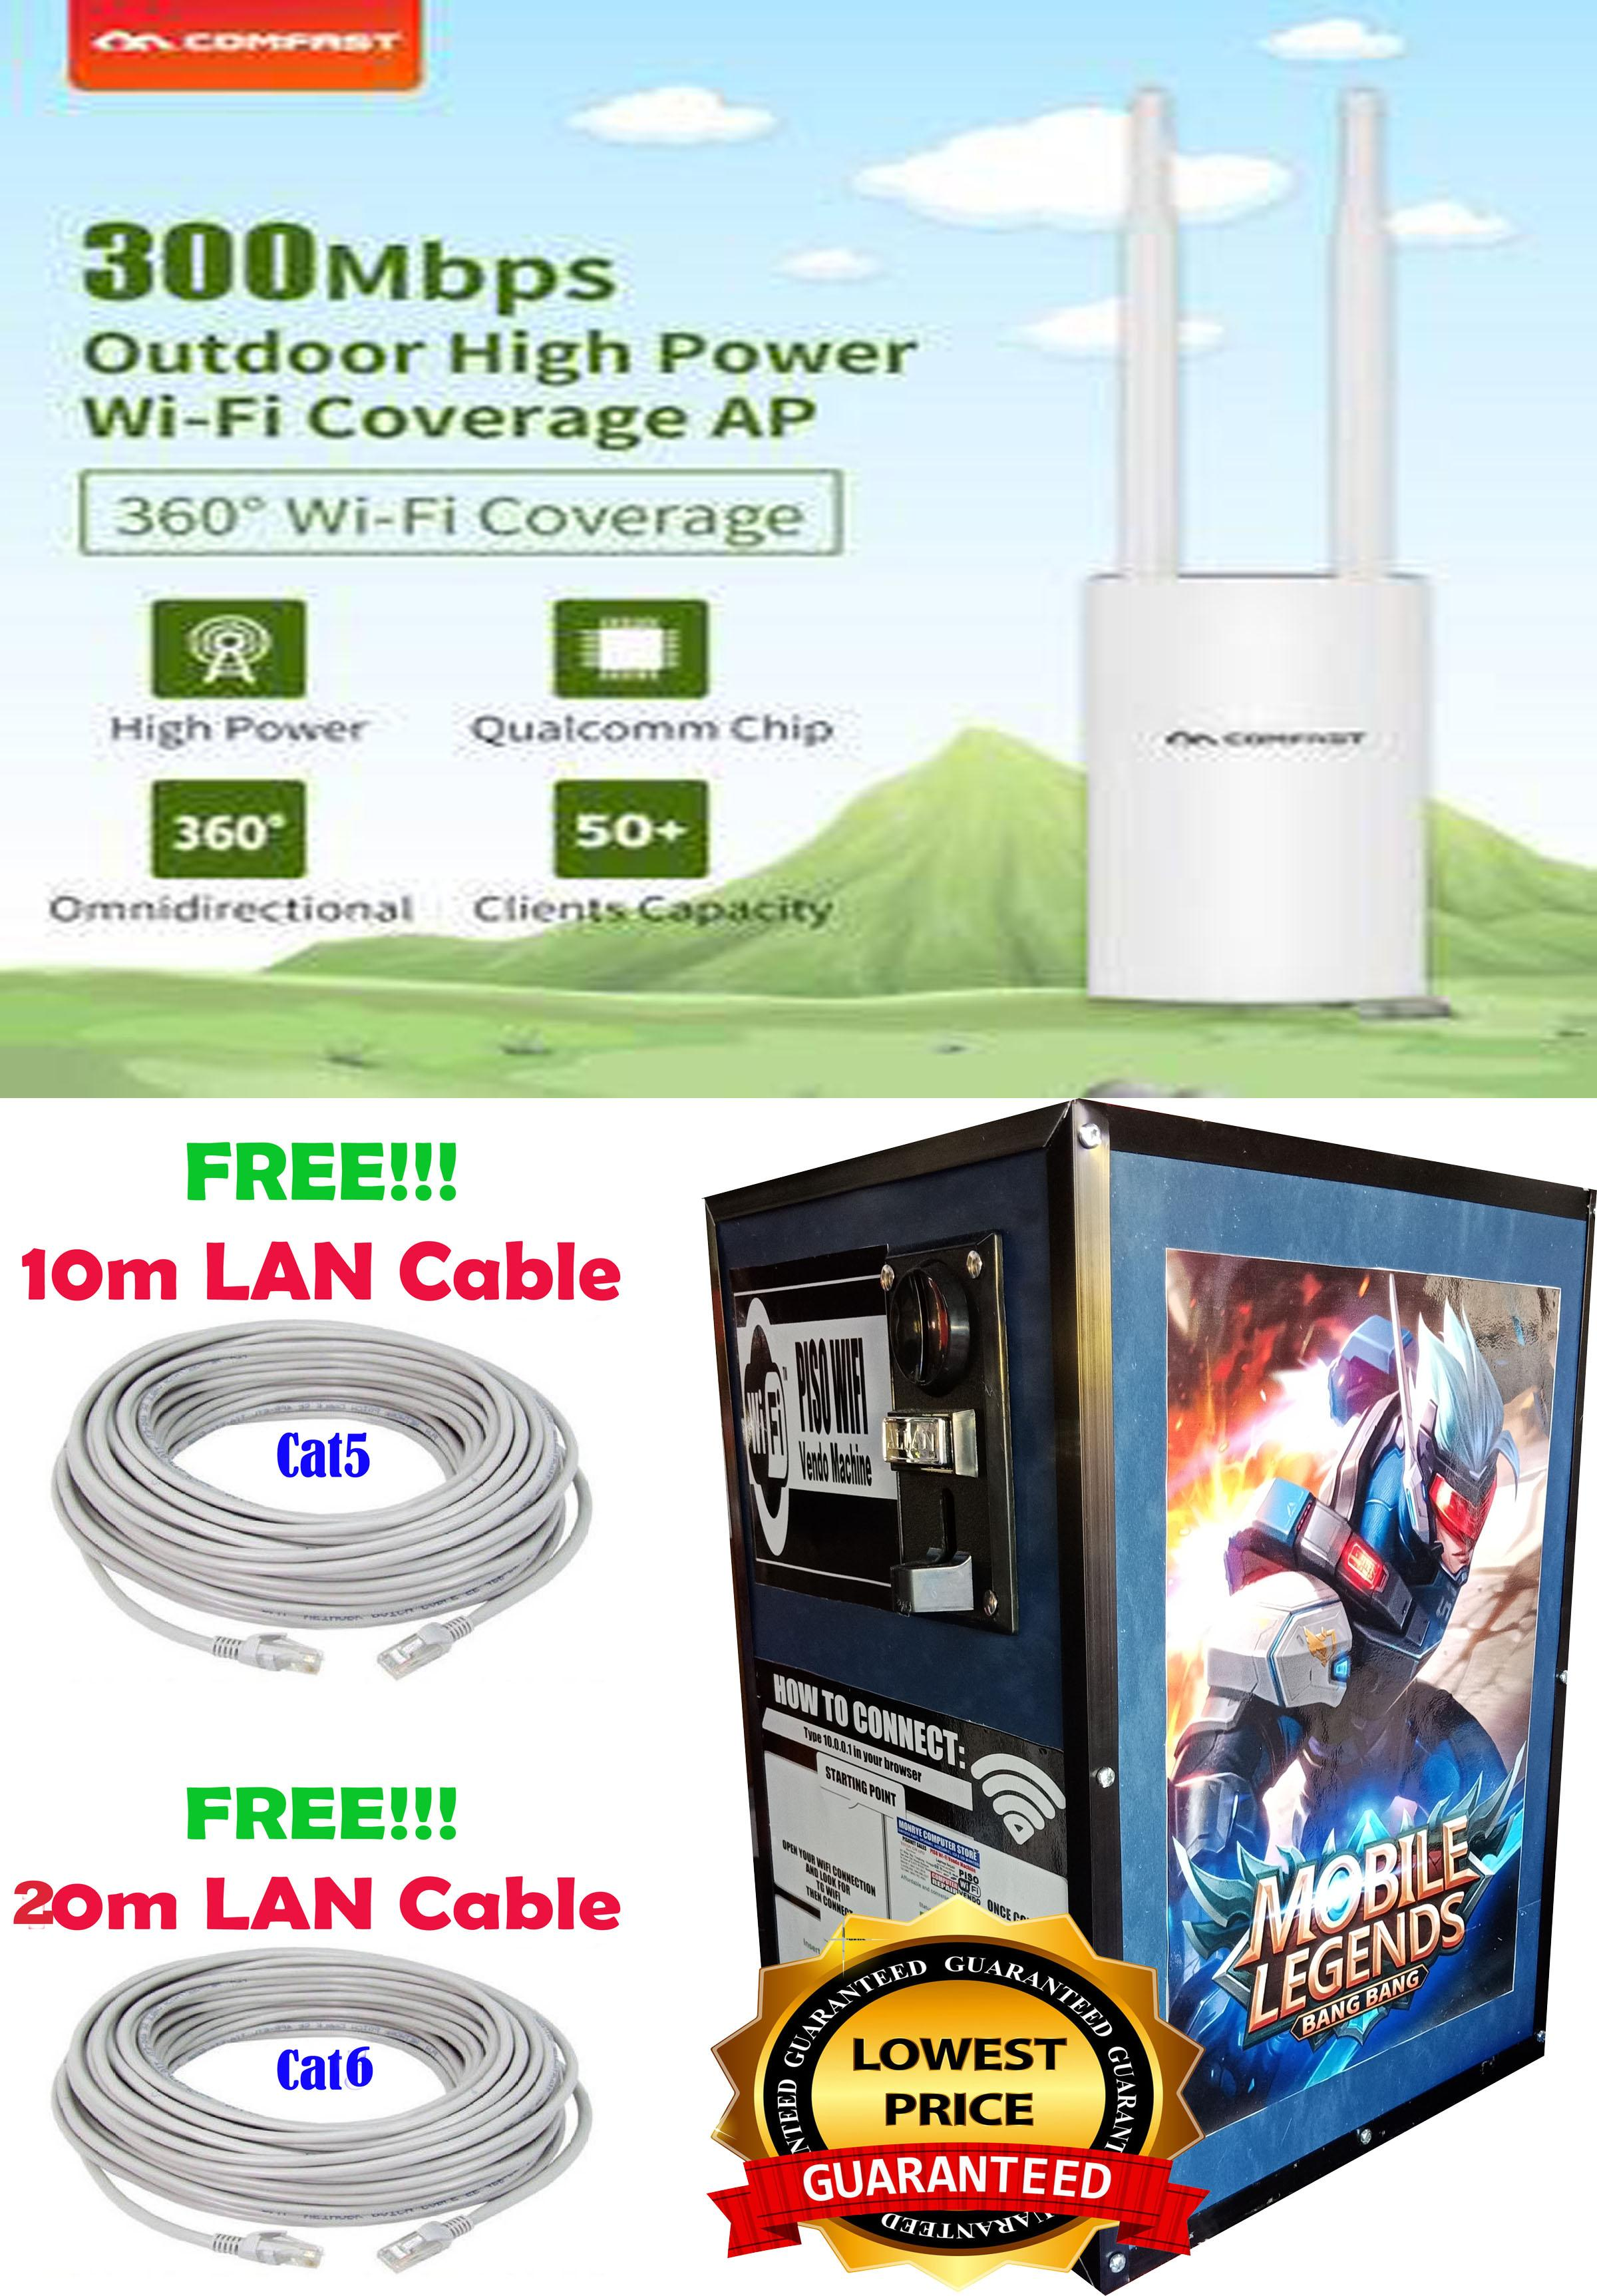 Piso Wifi with Outdoor Antenna 300meters FREE 2 Tarpaulin with Piso Wifi  Sign and Instructions